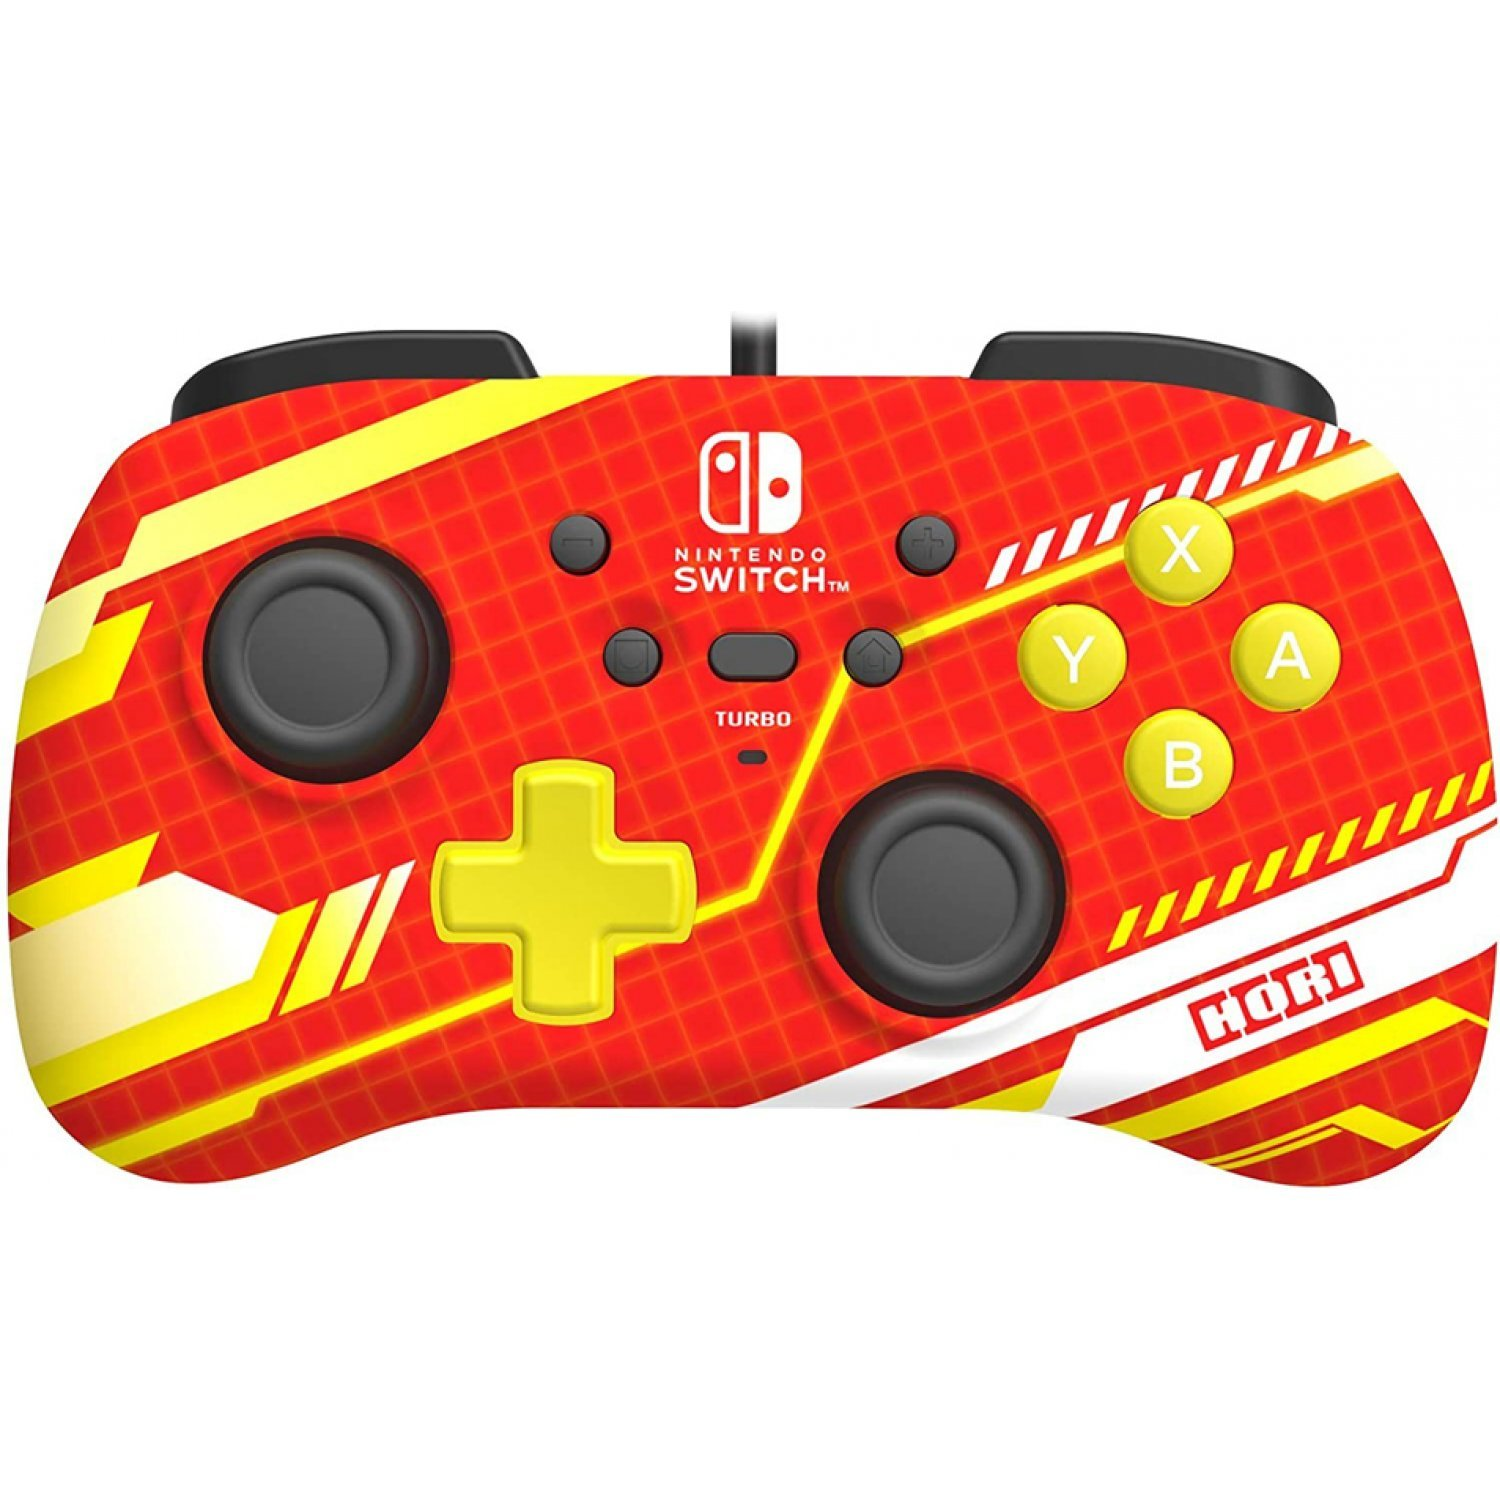 hori-mini-controller-for-nintendo-switch-red-631427.7.jpg